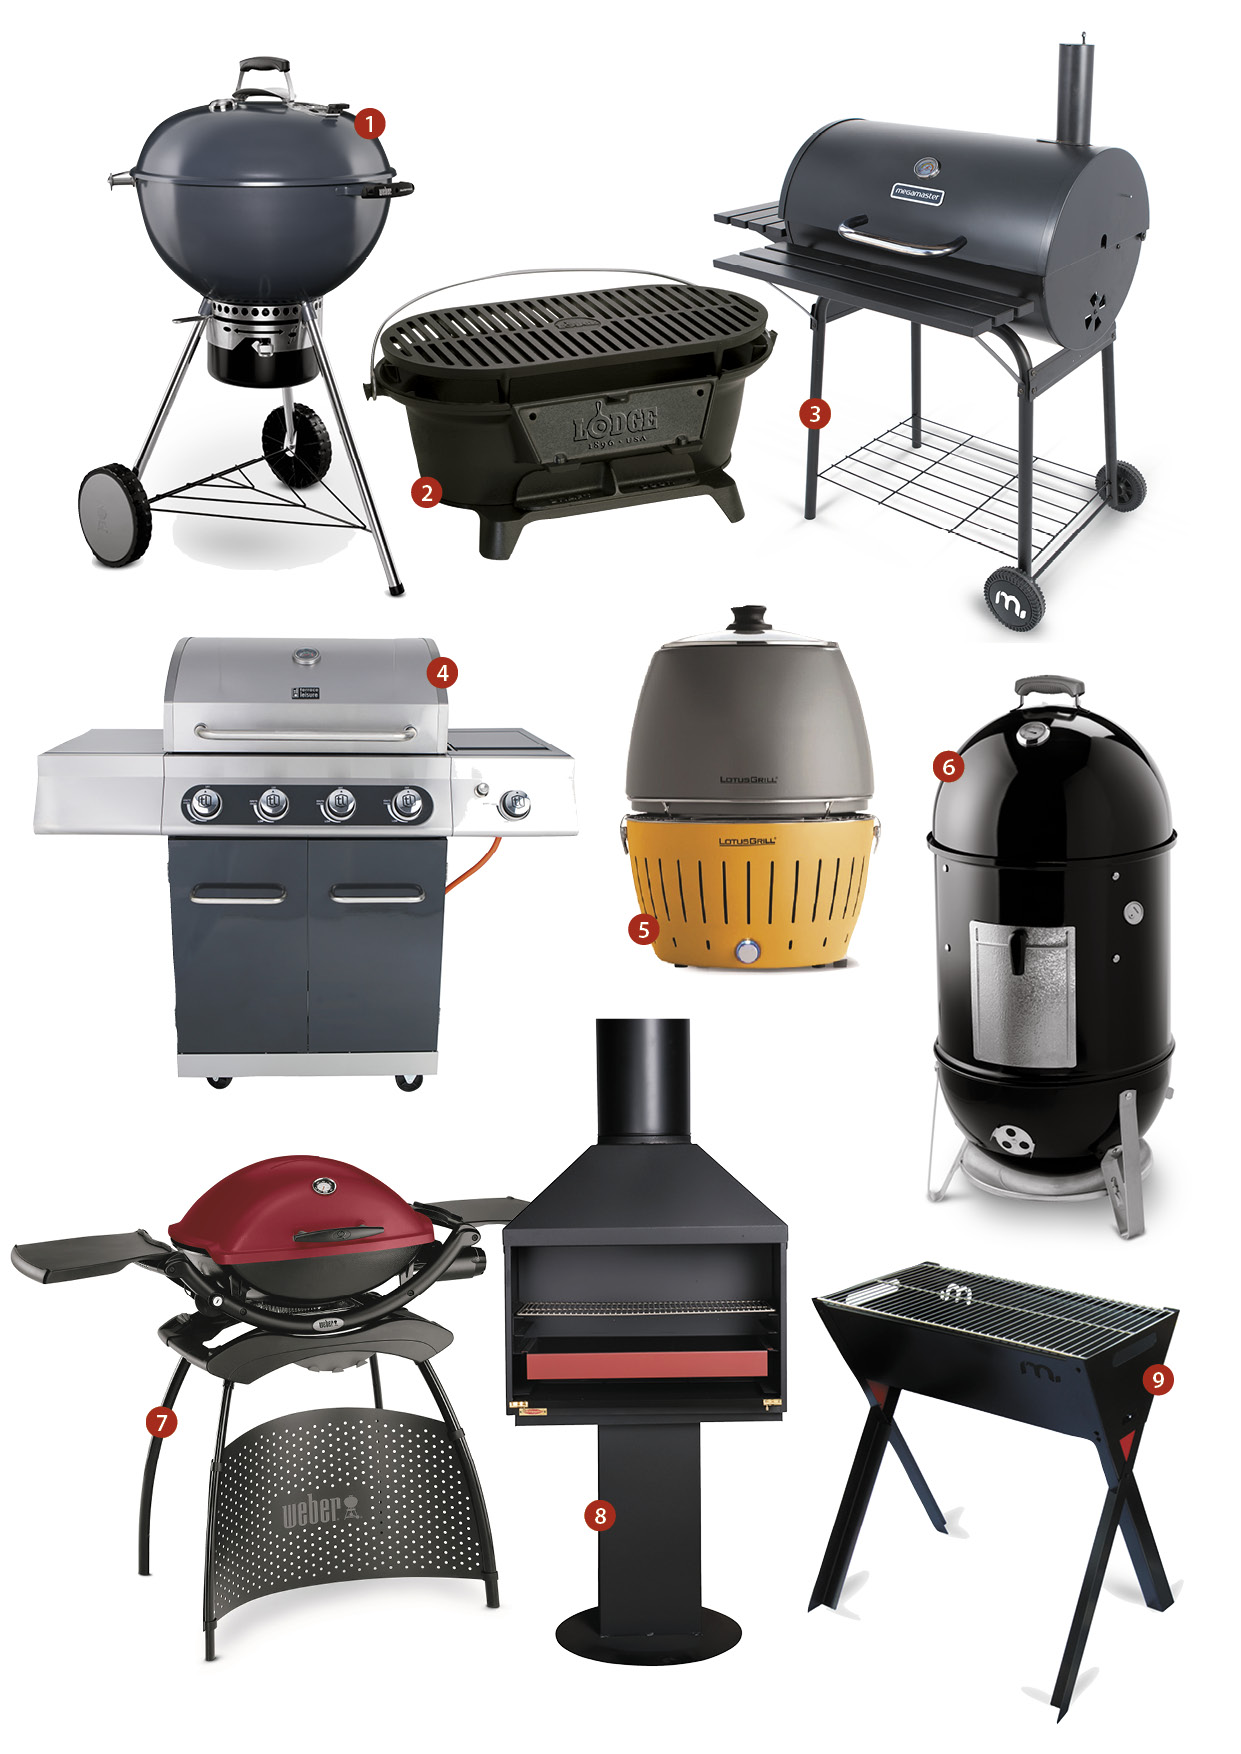 BRING AND BRAAI ONLINE SHOPPING - SHOP FOR BRAAIS - SA GARDEN AND HOME